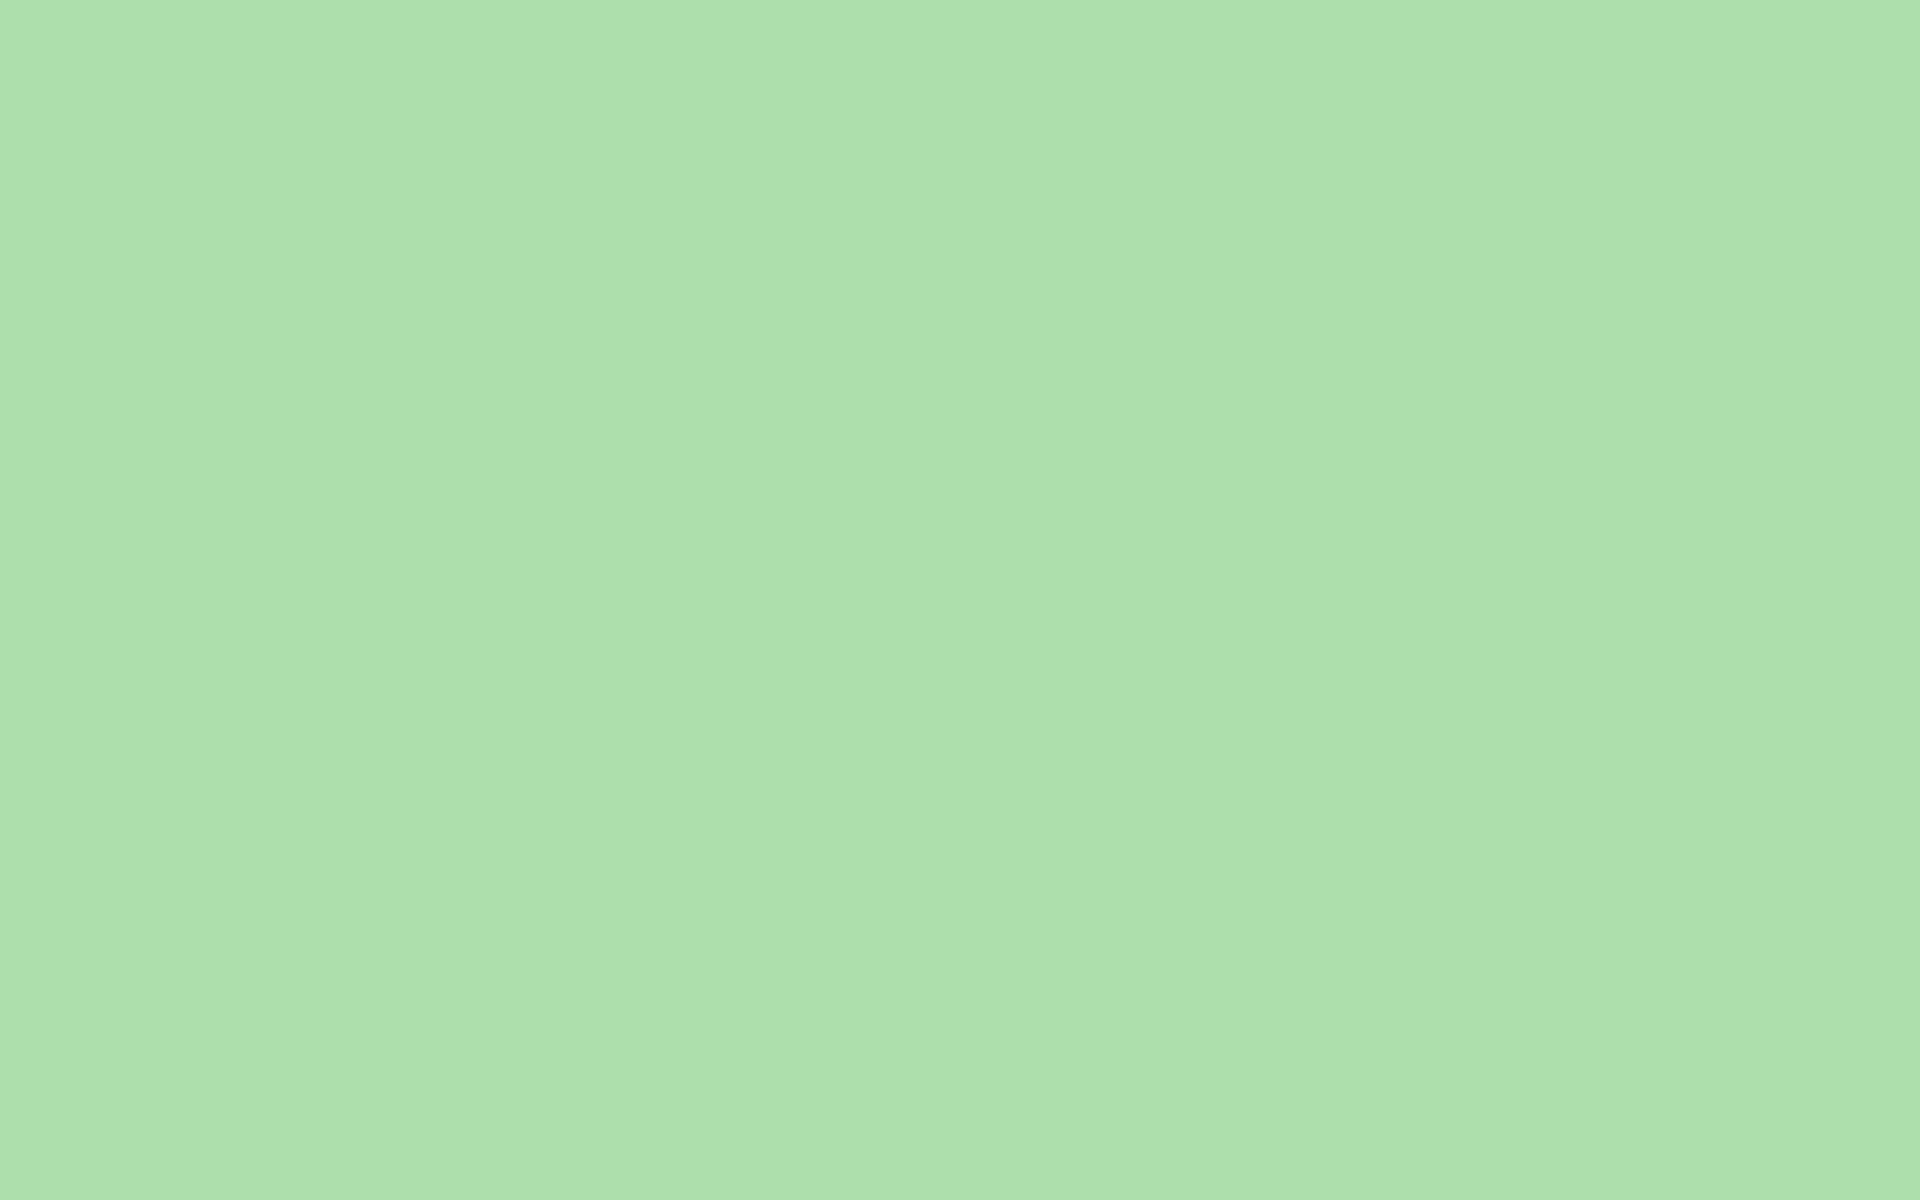 light green solid color wallpaper 49783 1920x1200 px